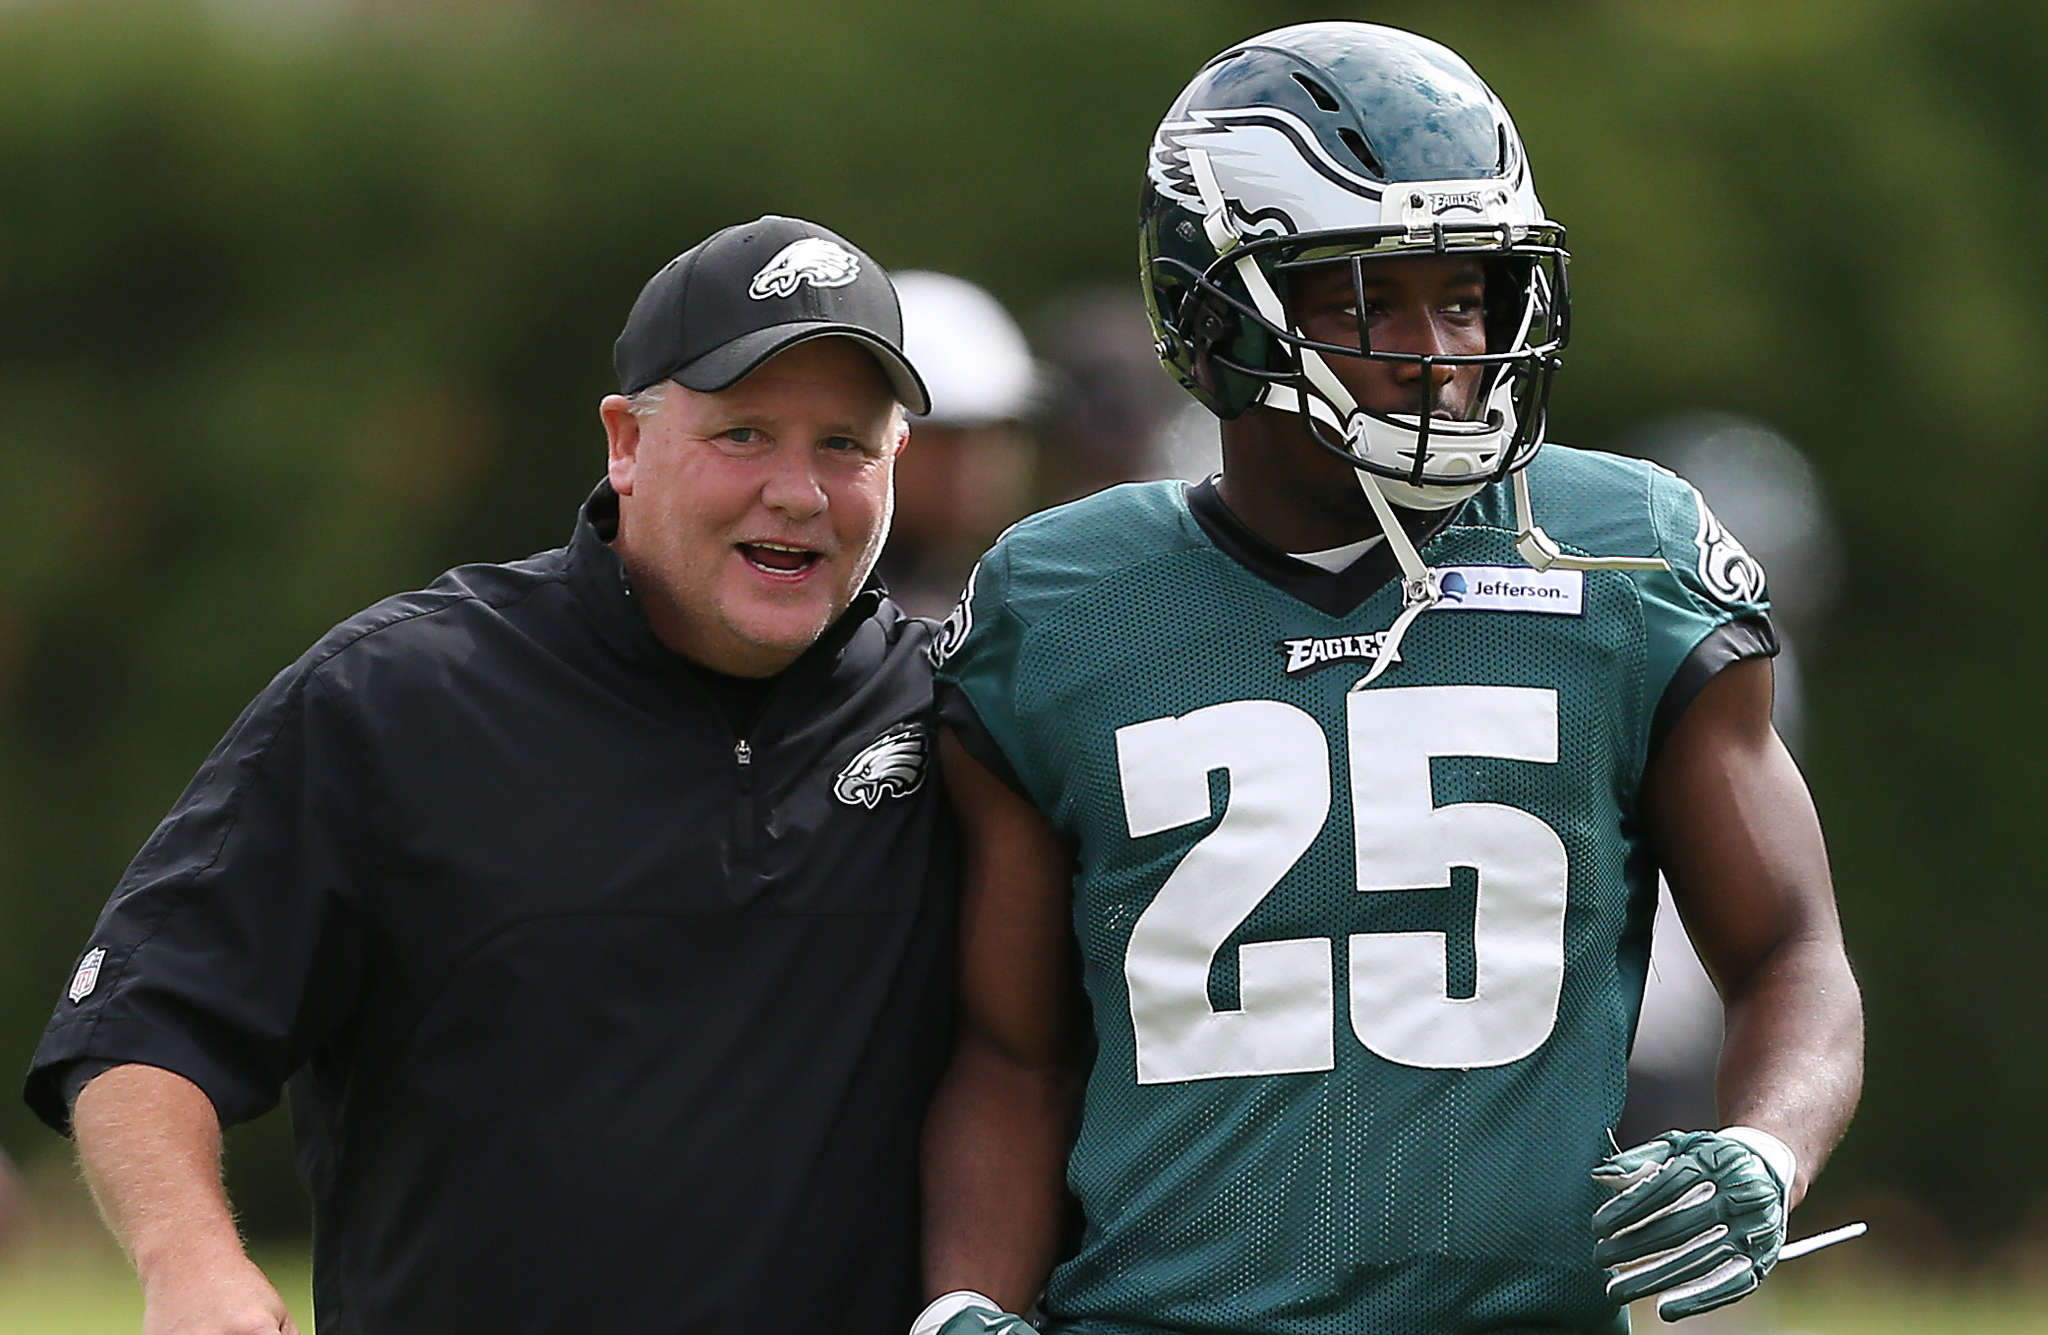 DAVID MAIALETTI / STAFF PHOTOGRAPHER Eagles coach Chip Kelly and LeSean McCoy in happier times.